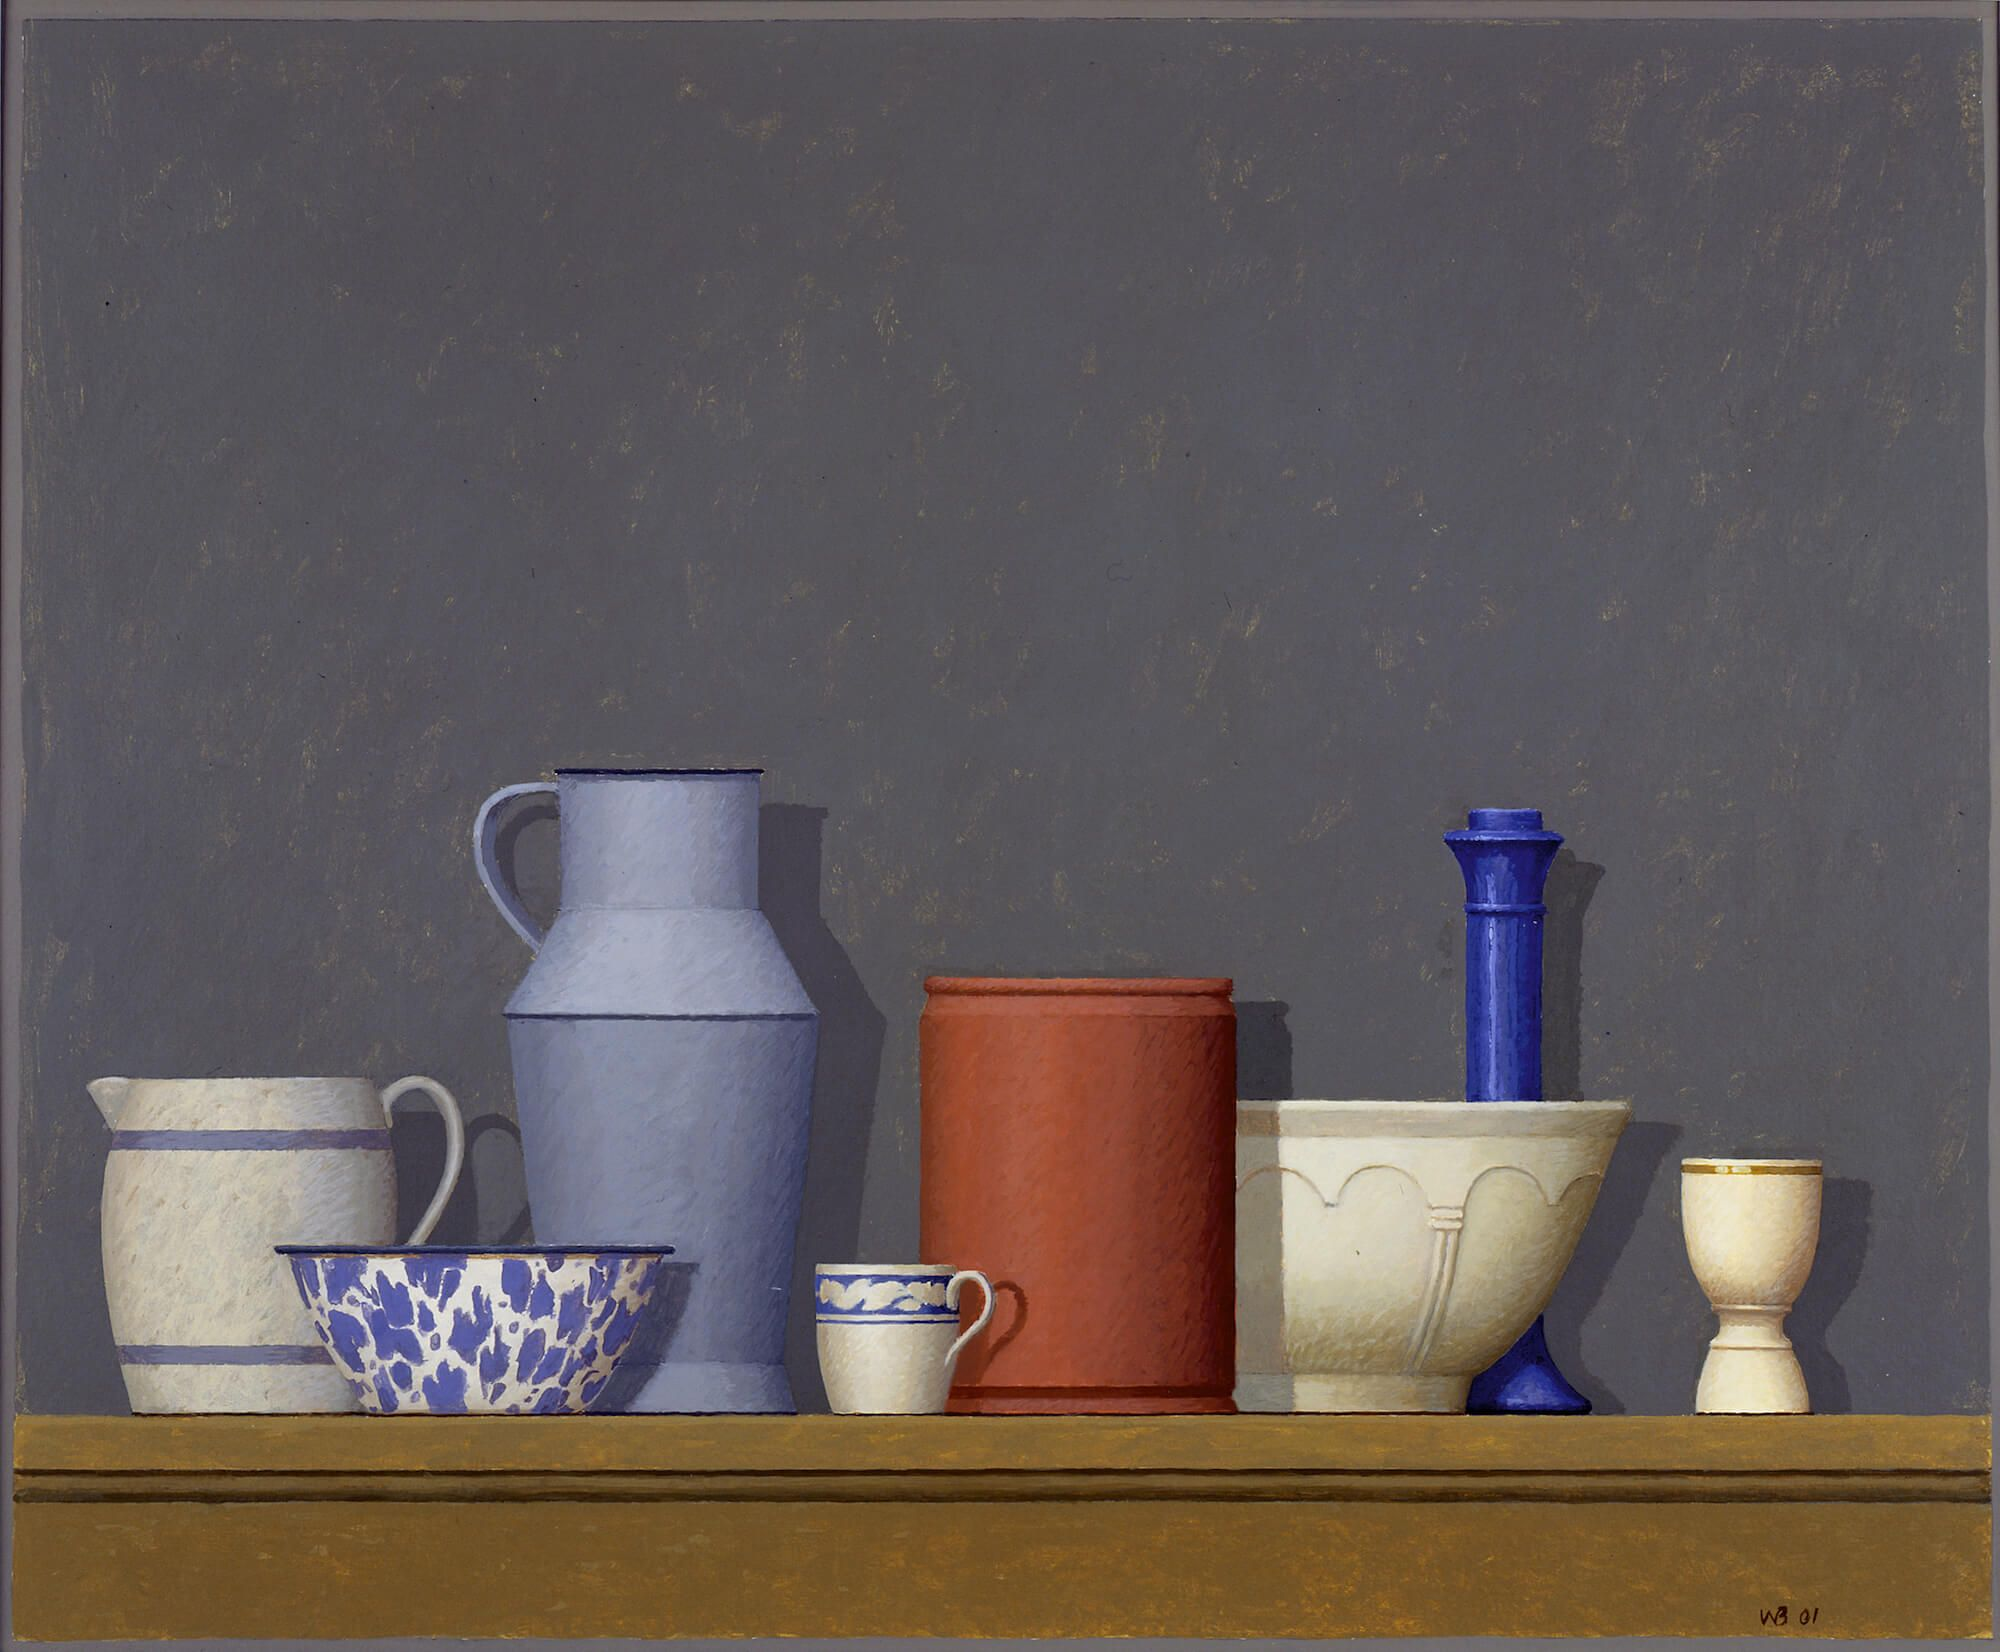 William Bailey, Pianello, 2001, tempera on paper 18 x 22 inches (courtesy of the artist and Betty Cuningham Gallery)